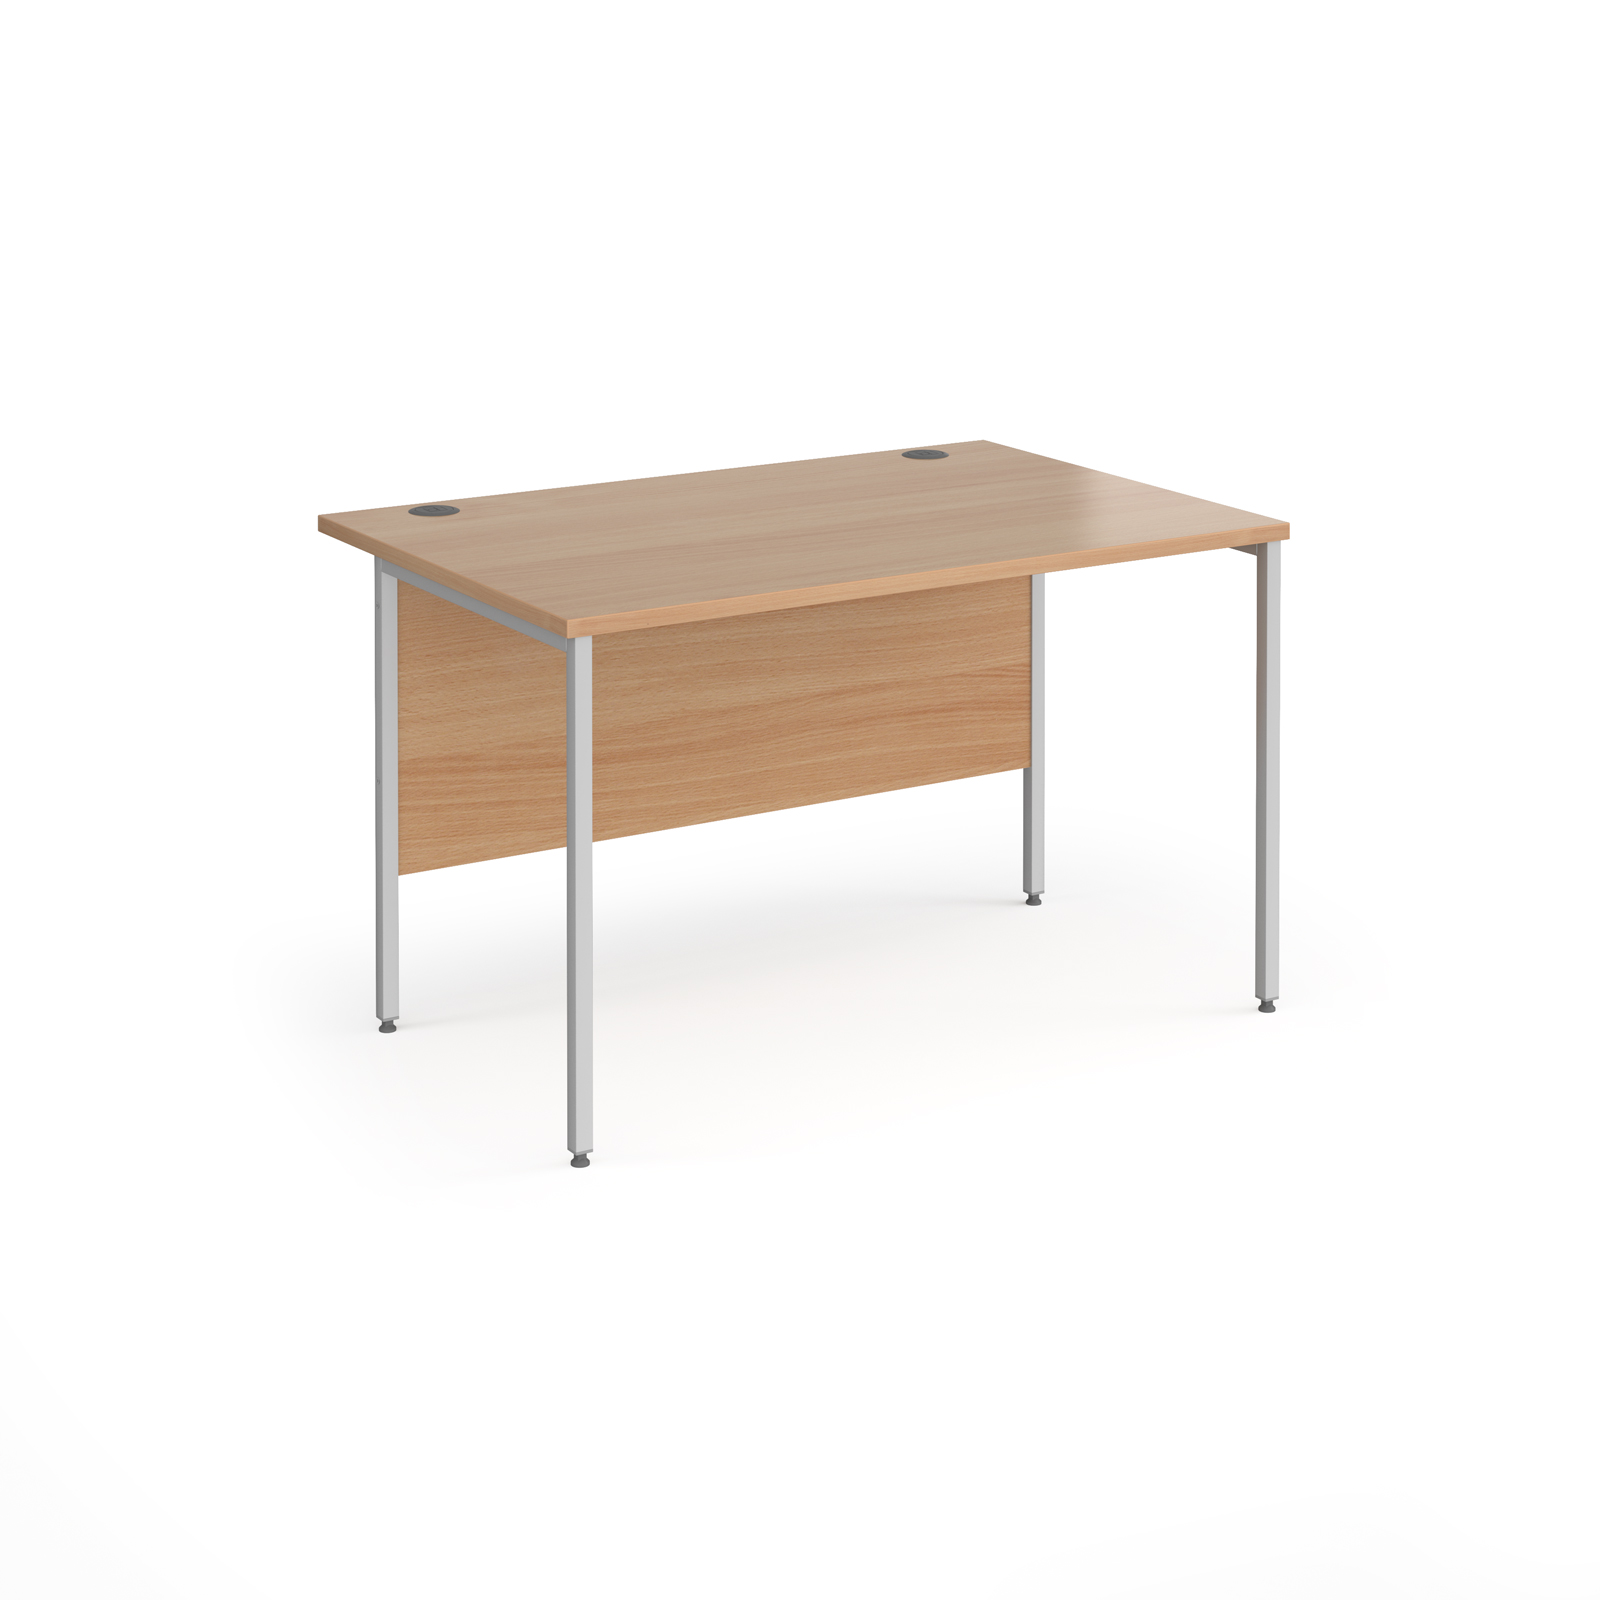 Contract 25 straight desk with silver H-Frame leg 1200mm x 800mm - beech top